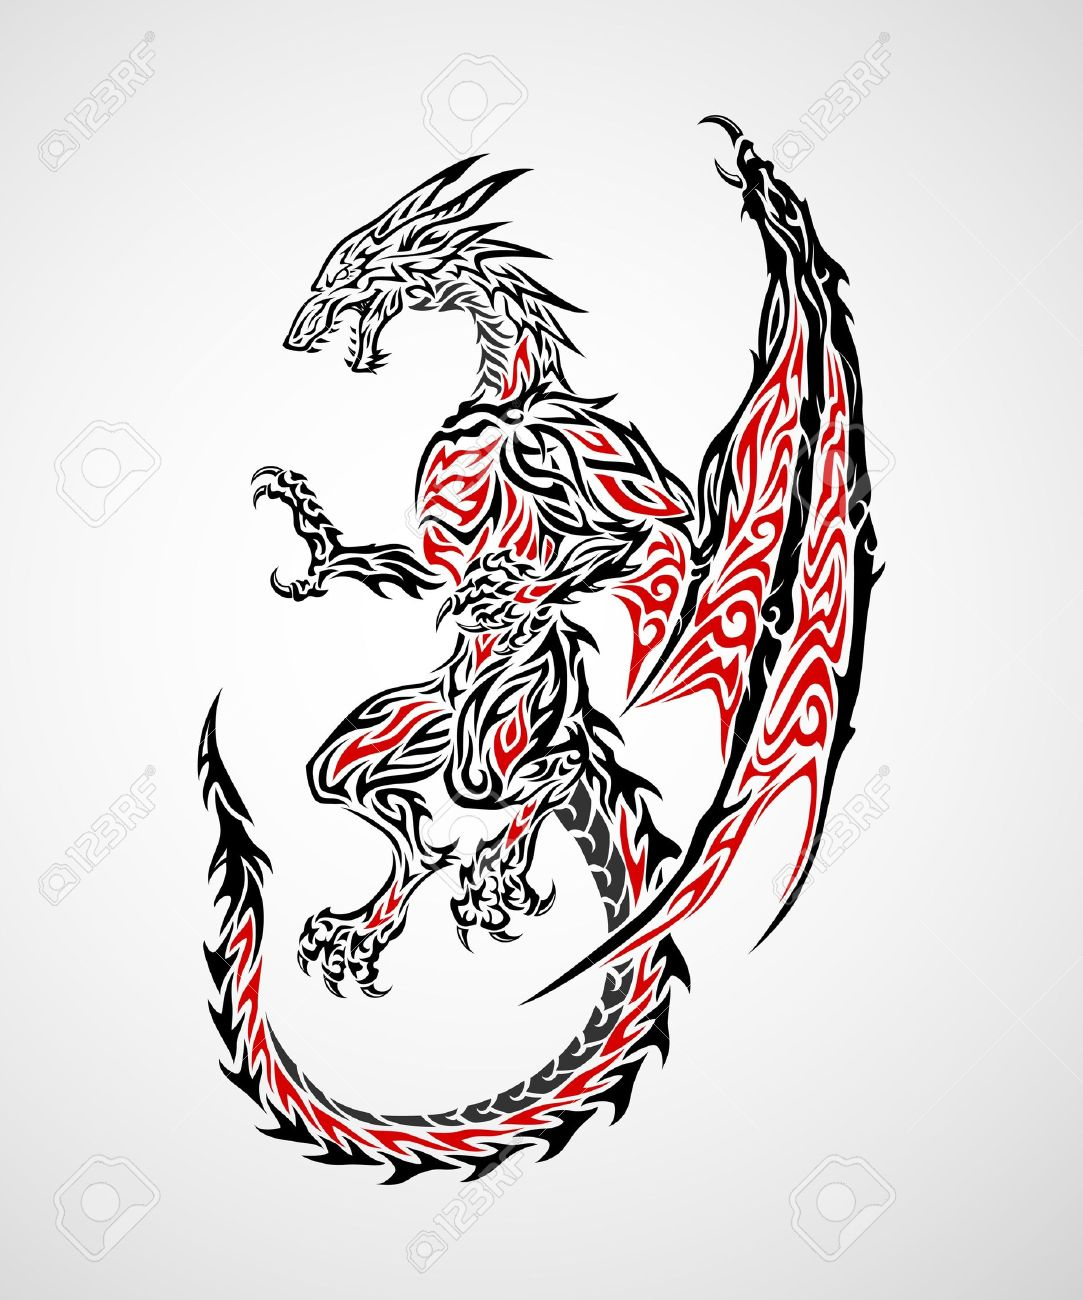 Dessin Tribal Dragon dragon tribal tattoo royalty free cliparts, vectors, and stock